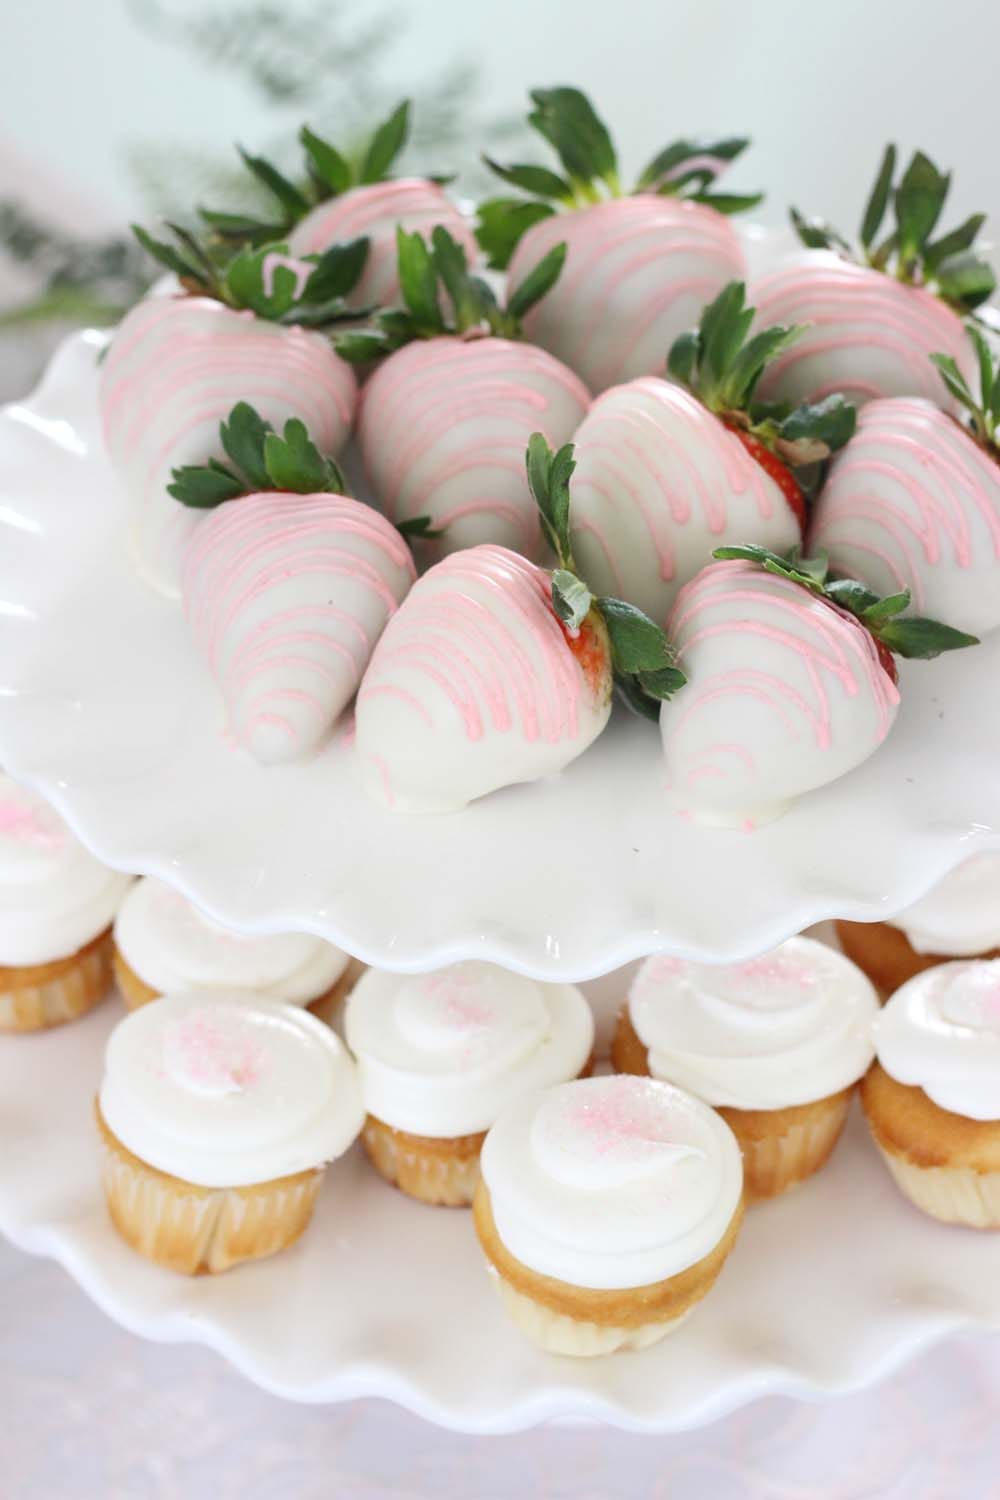 Tiered mini cupcakes and chocolate covered strawberries for a wedding dessert table from Cafe PIerrot in Sparta NJ